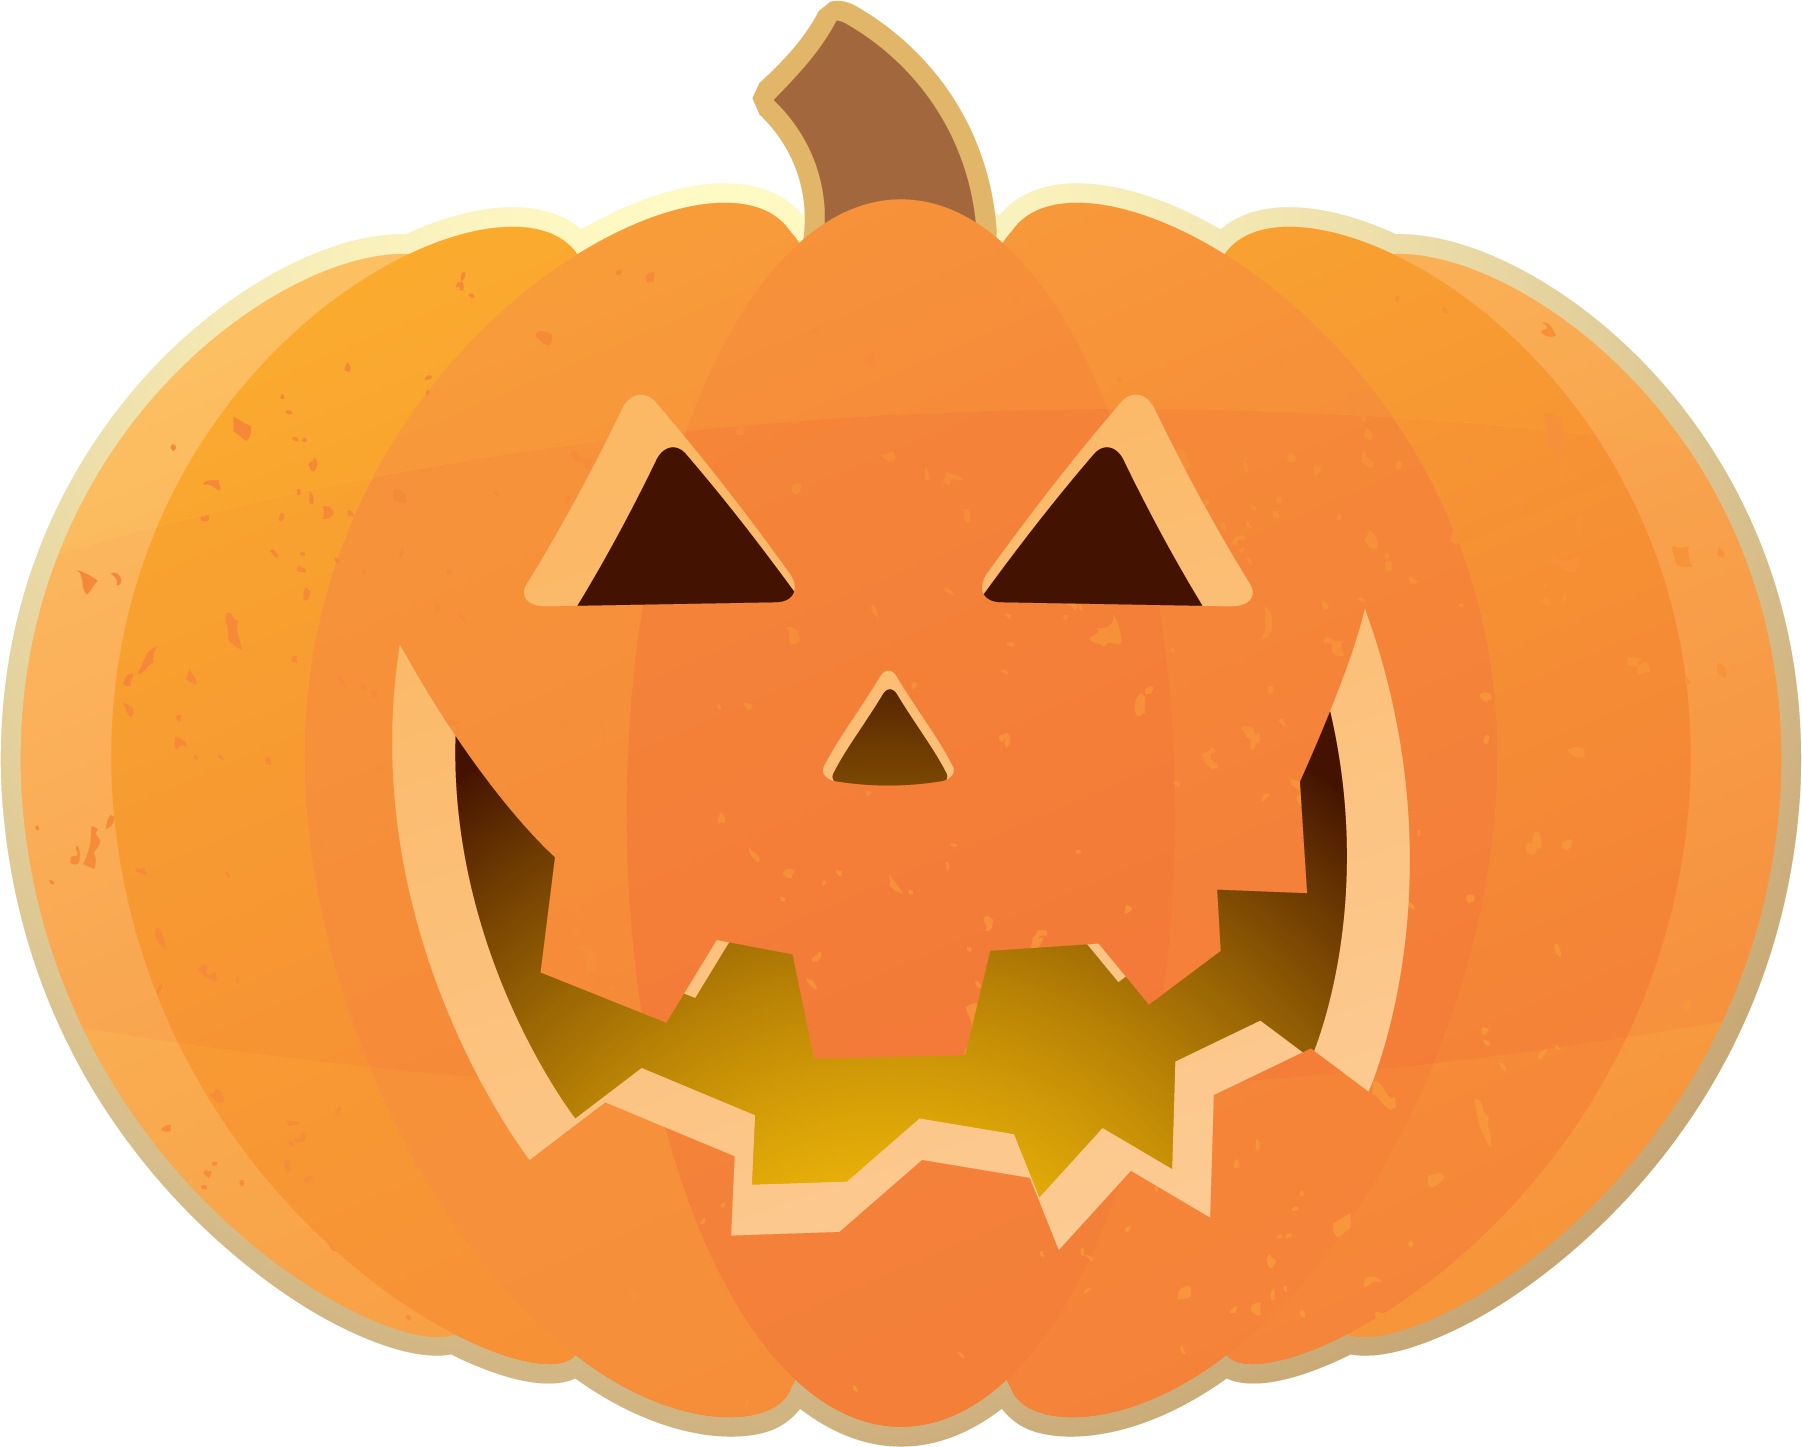 Happy halloween clipart banner clip freeuse stock Free Pumpkin Clipart at GetDrawings.com | Free for personal use Free ... clip freeuse stock